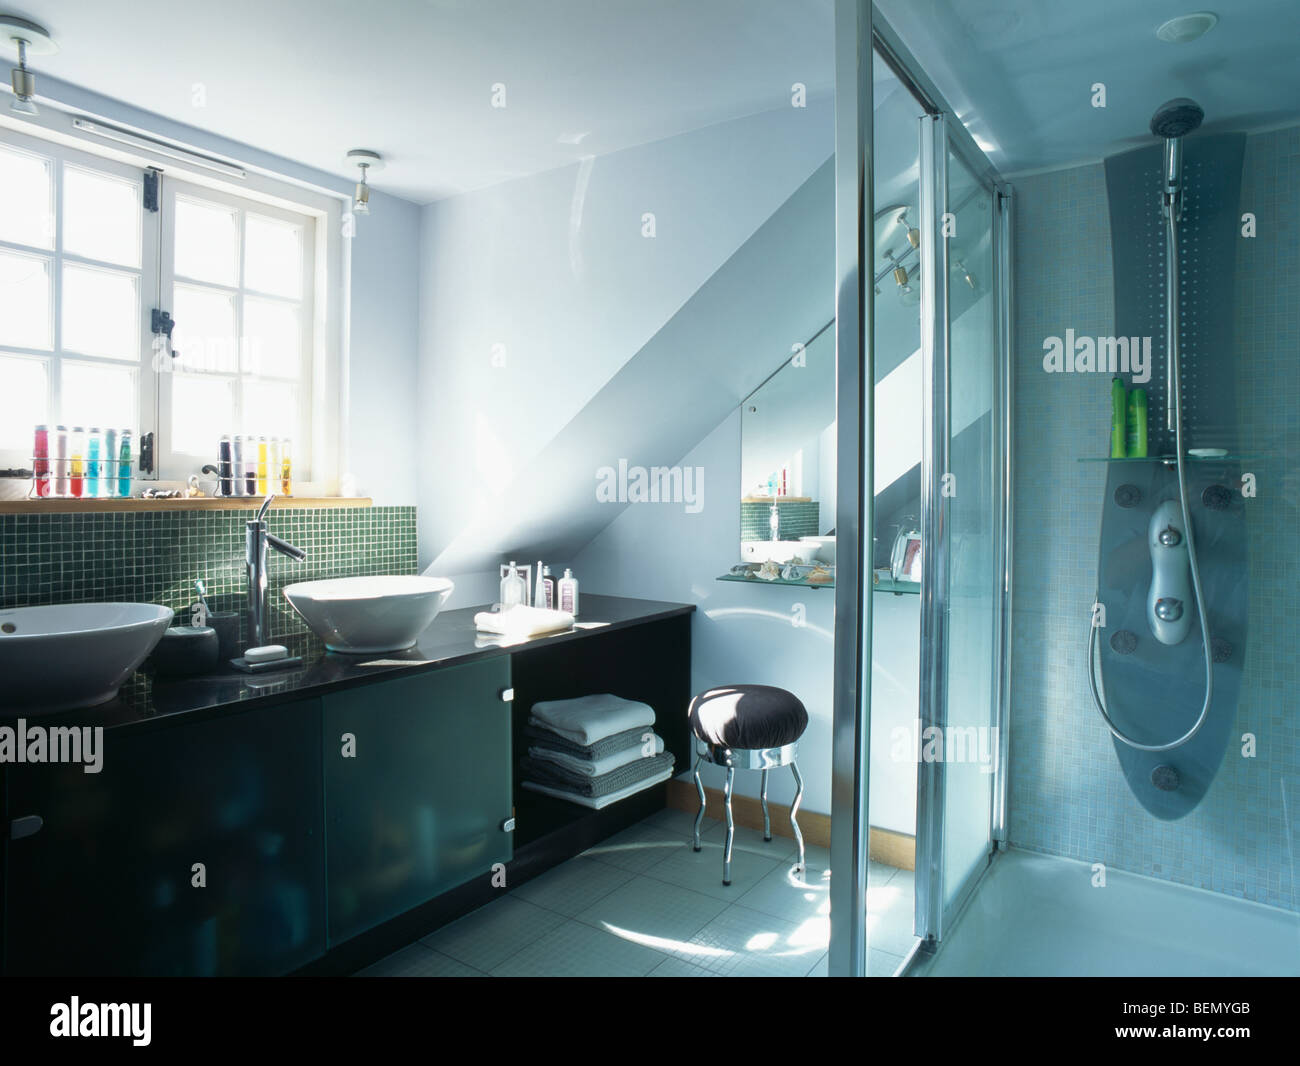 Glass wall dividing shower from vanity unit in modern white bathroom ...